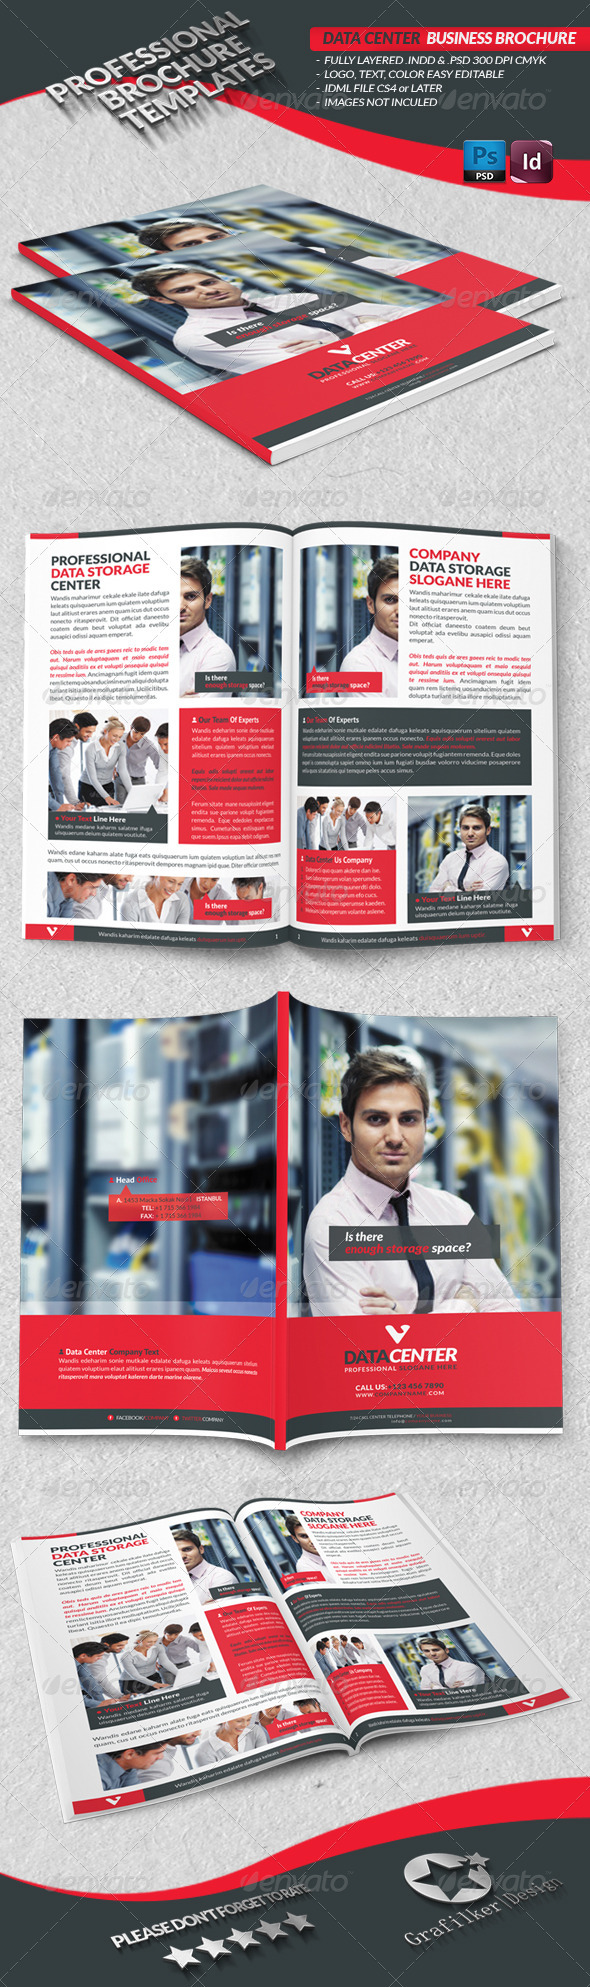 Data Center Business Brochure - Corporate Brochures